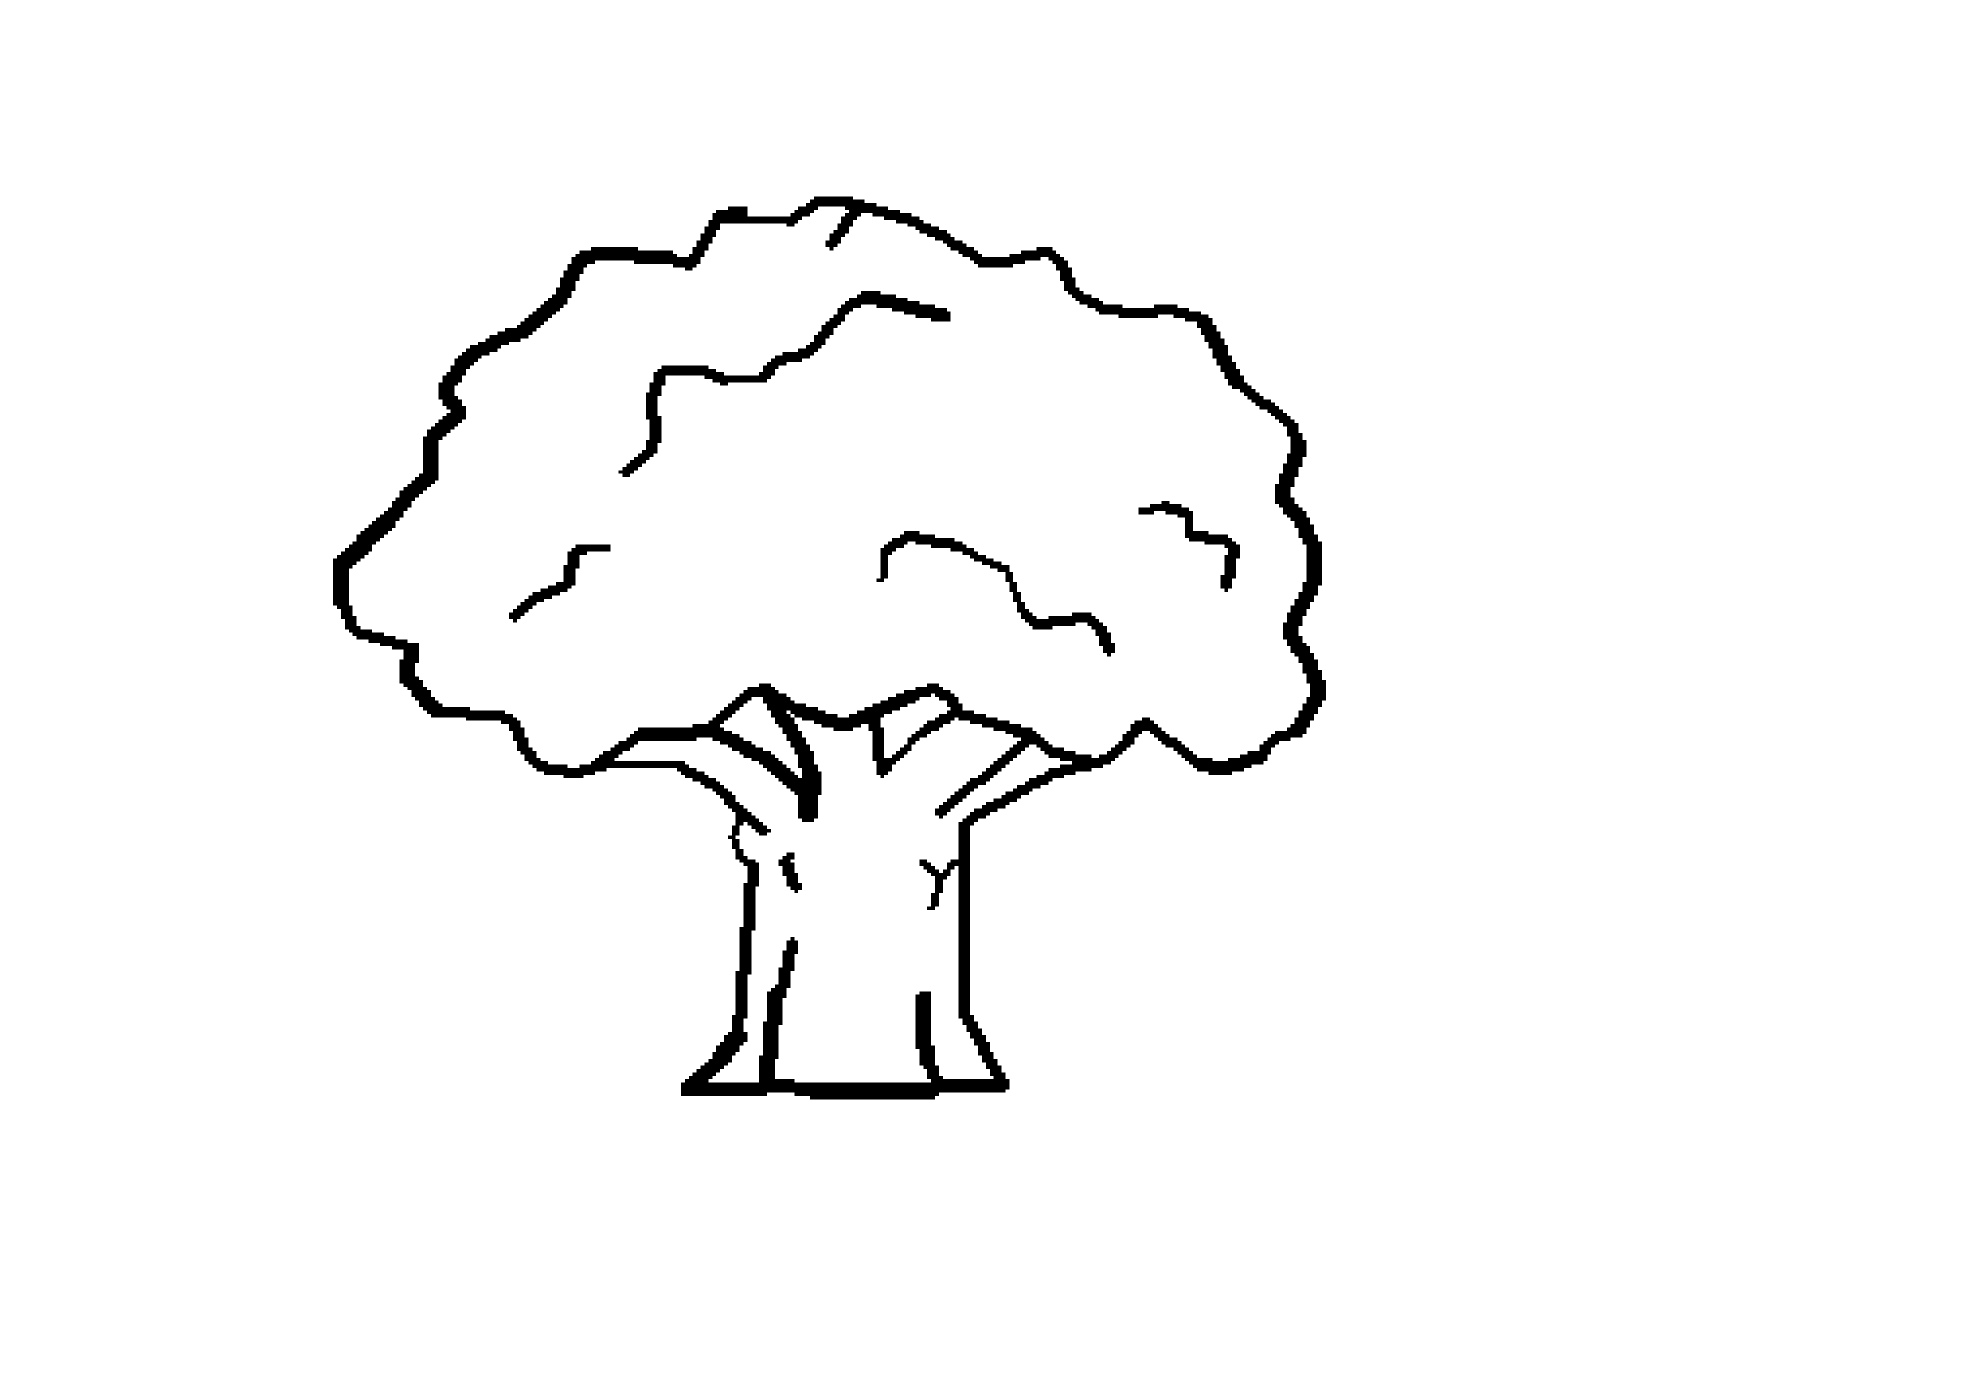 Tree line images clipart png library stock Tree black and white tree clipart black and white 2 ... png library stock